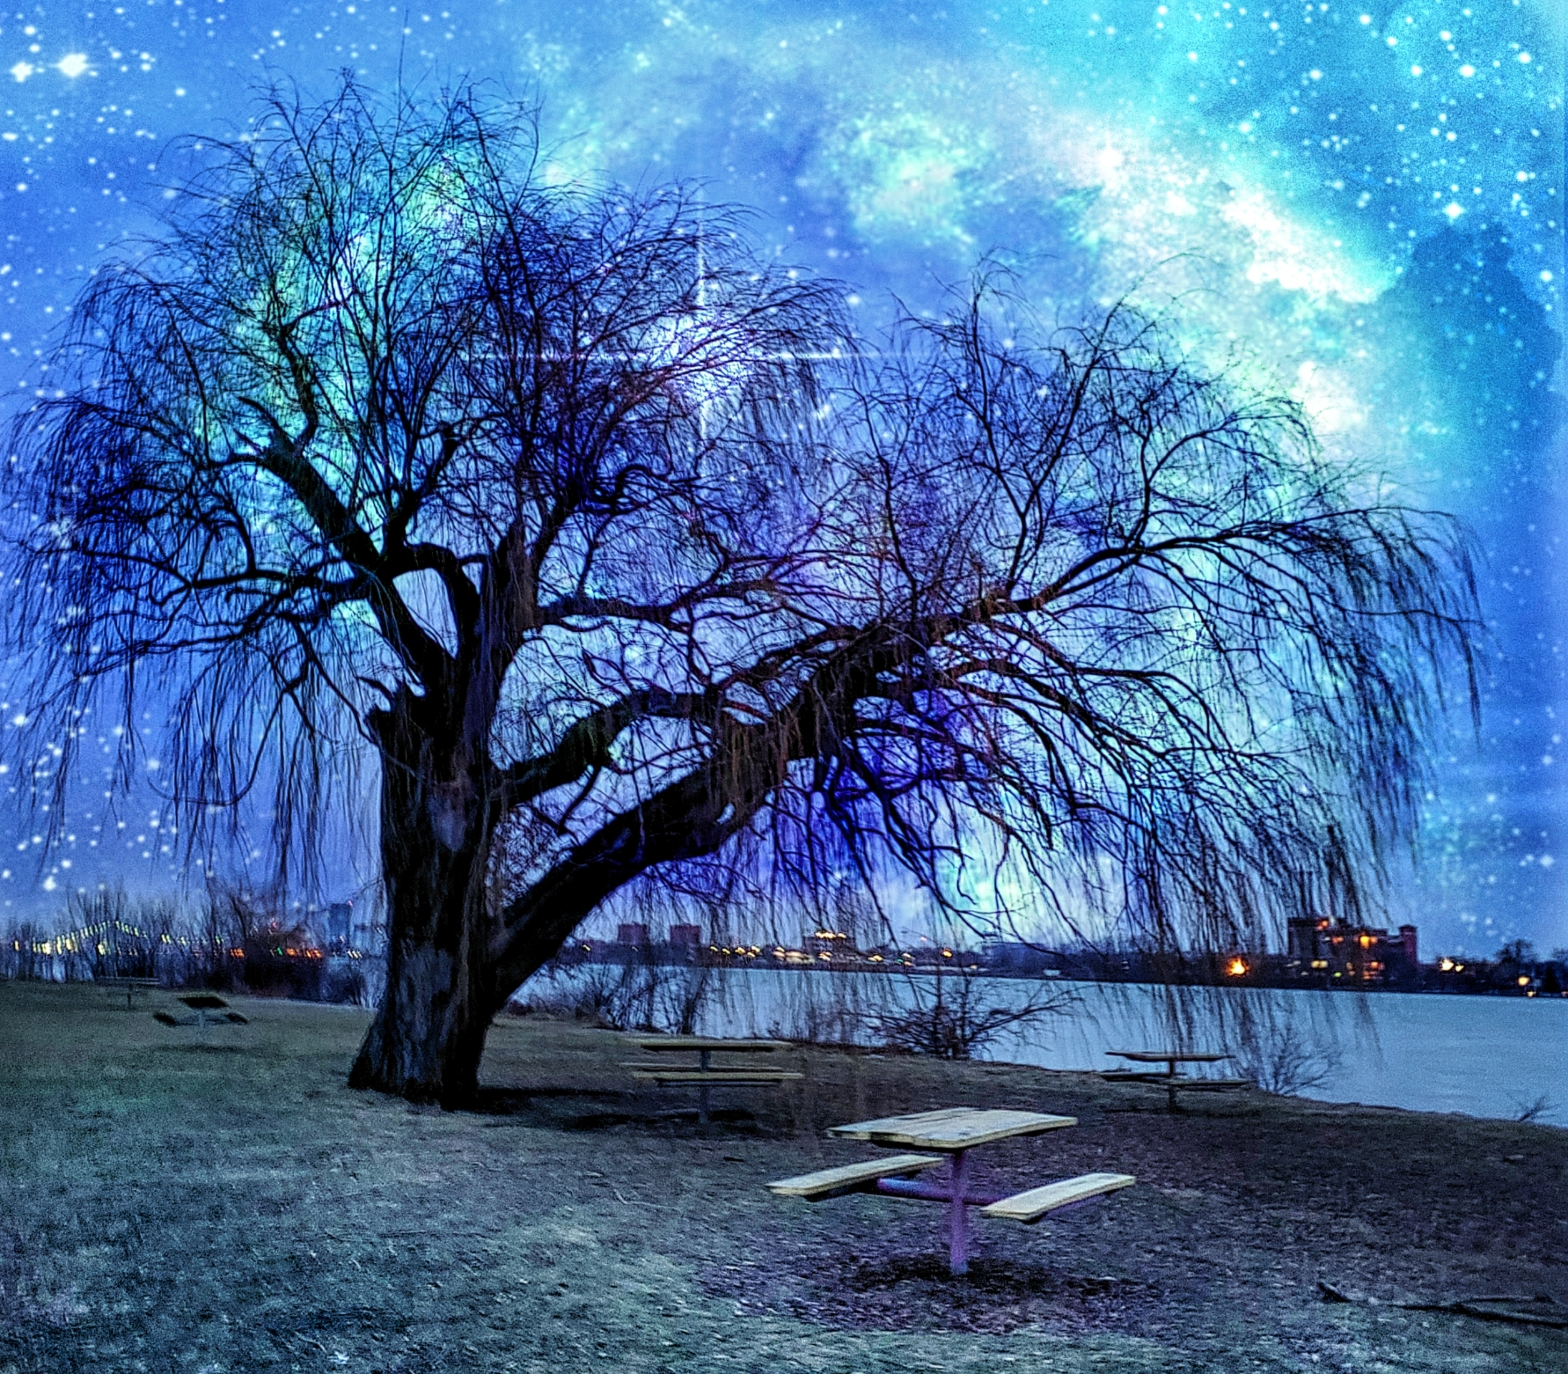 a willow tree surrounded by picnic tables on belle isle, the sky is a bright blue and filled with stars